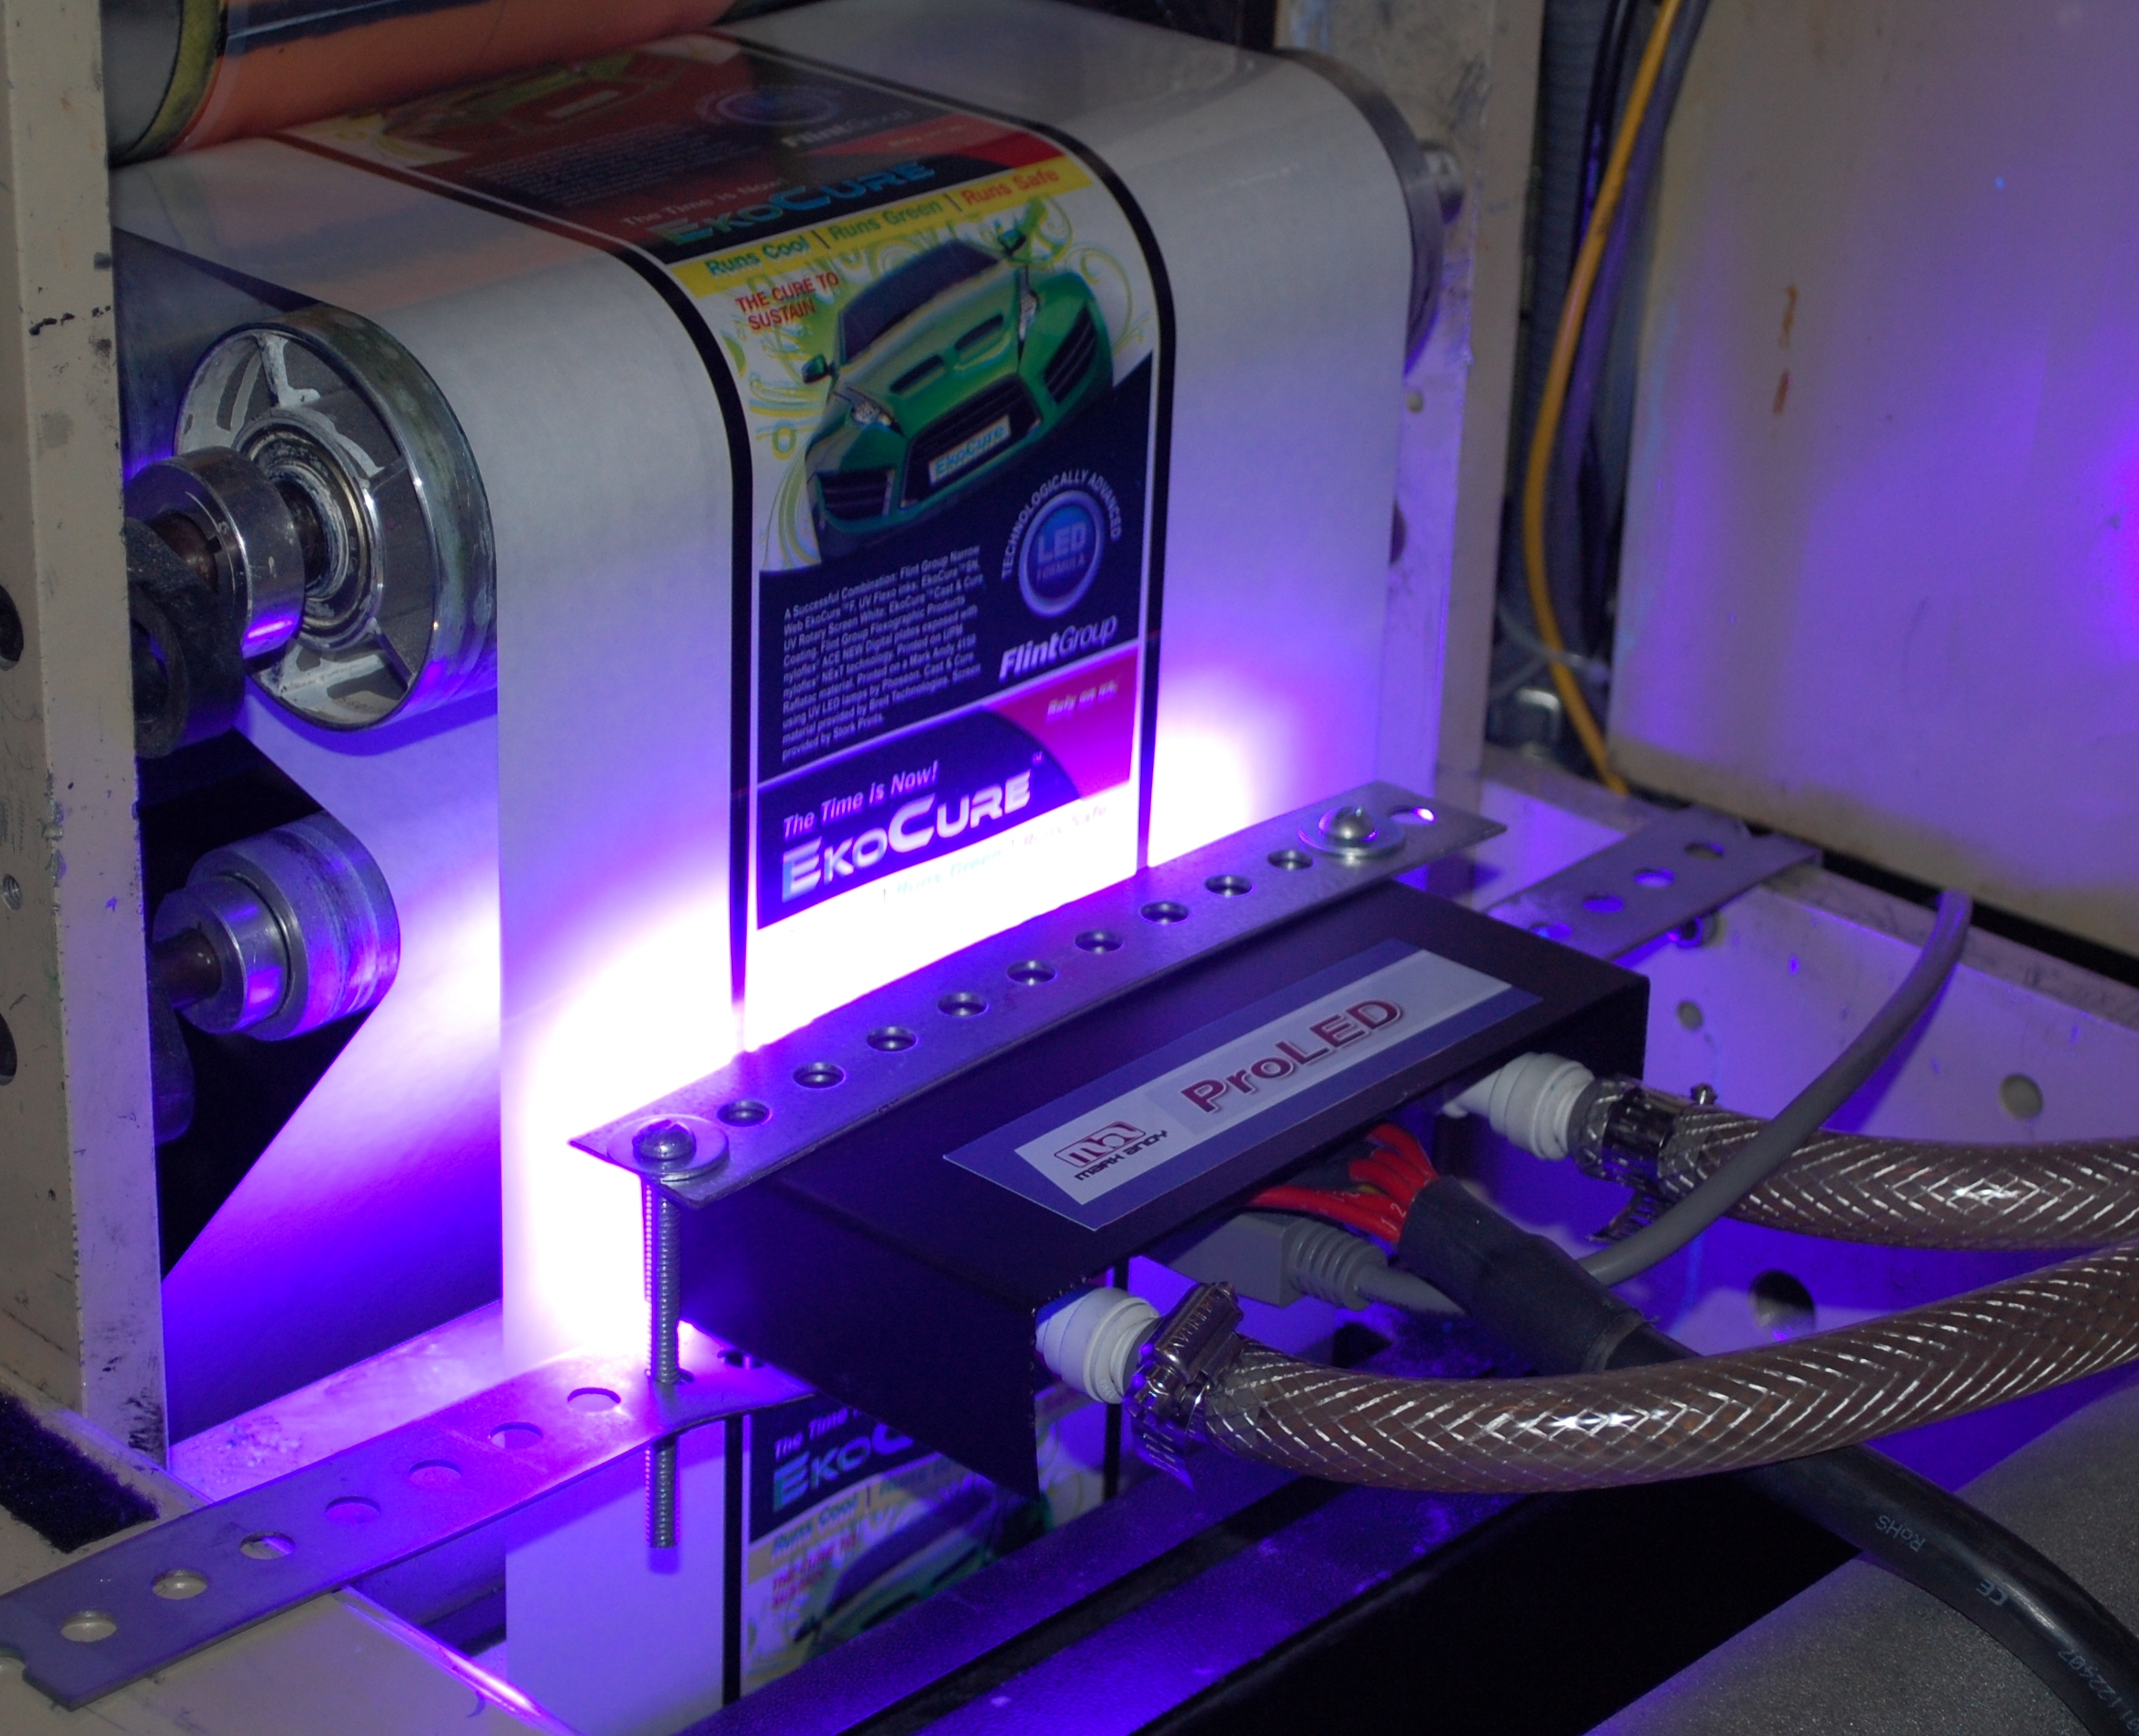 Uv Led The Future Is Today The Time Is Now Flexible